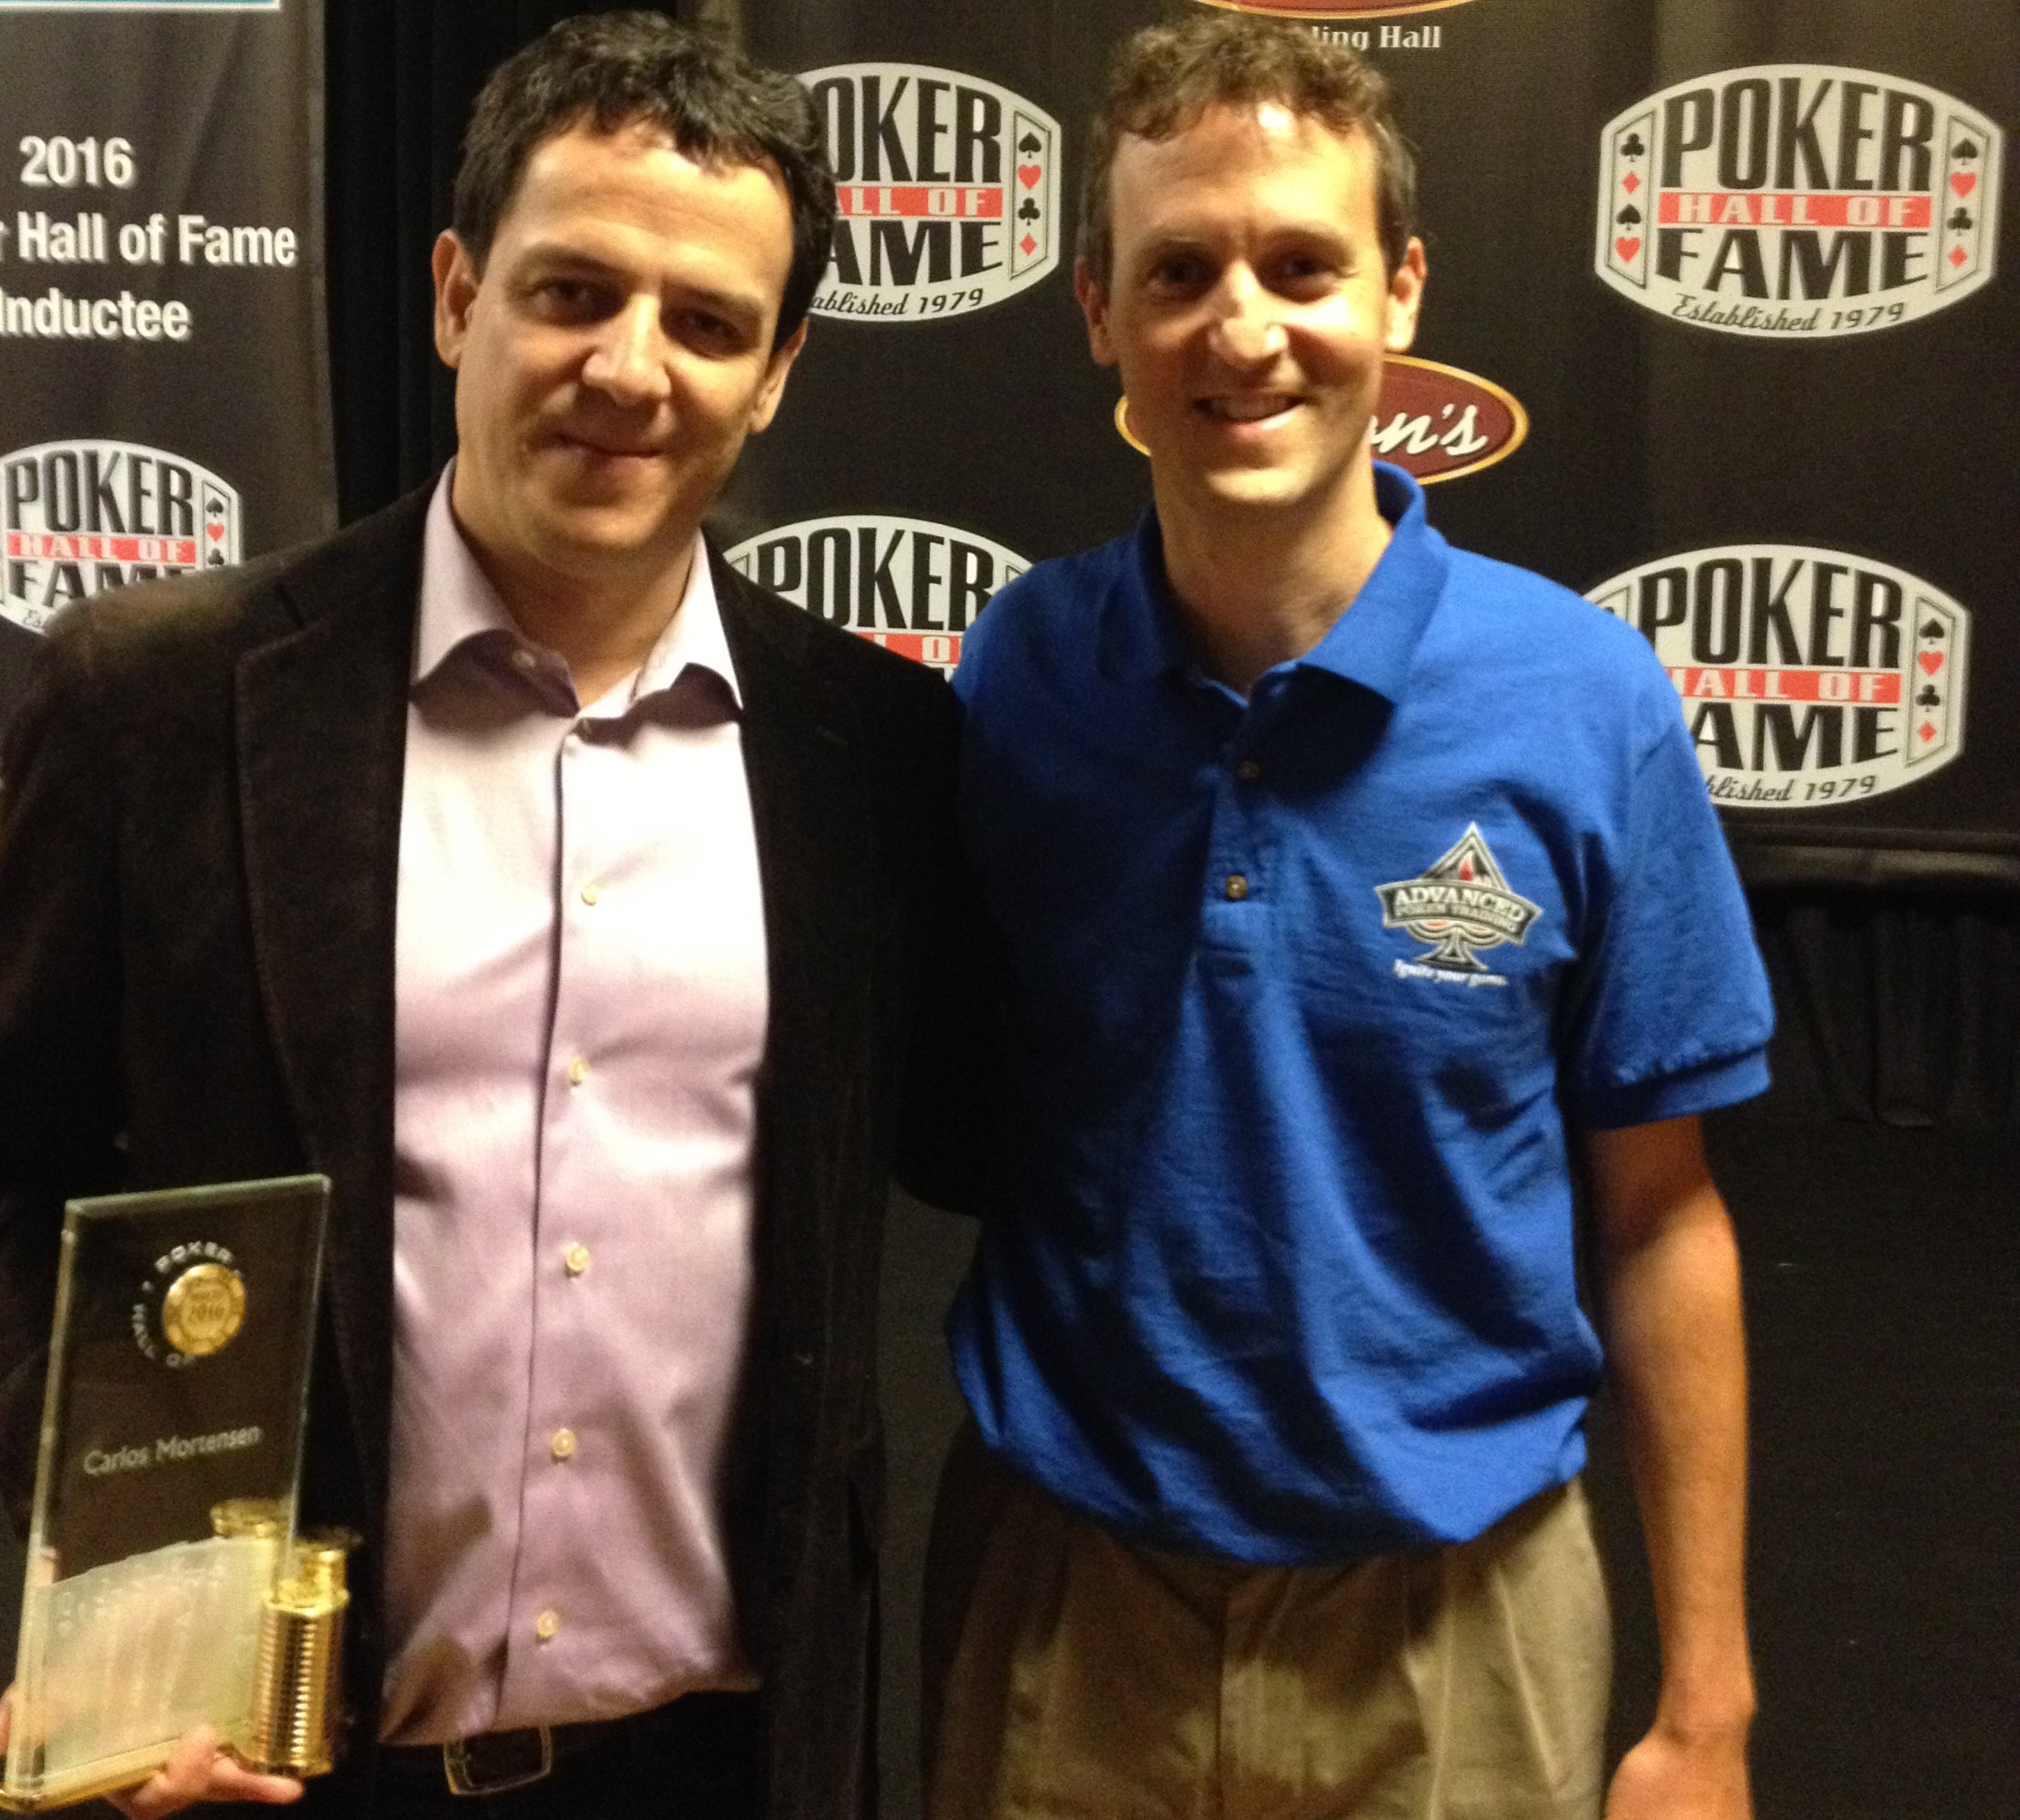 Carlos Mortensen, WSOP Hall of Fame inductee